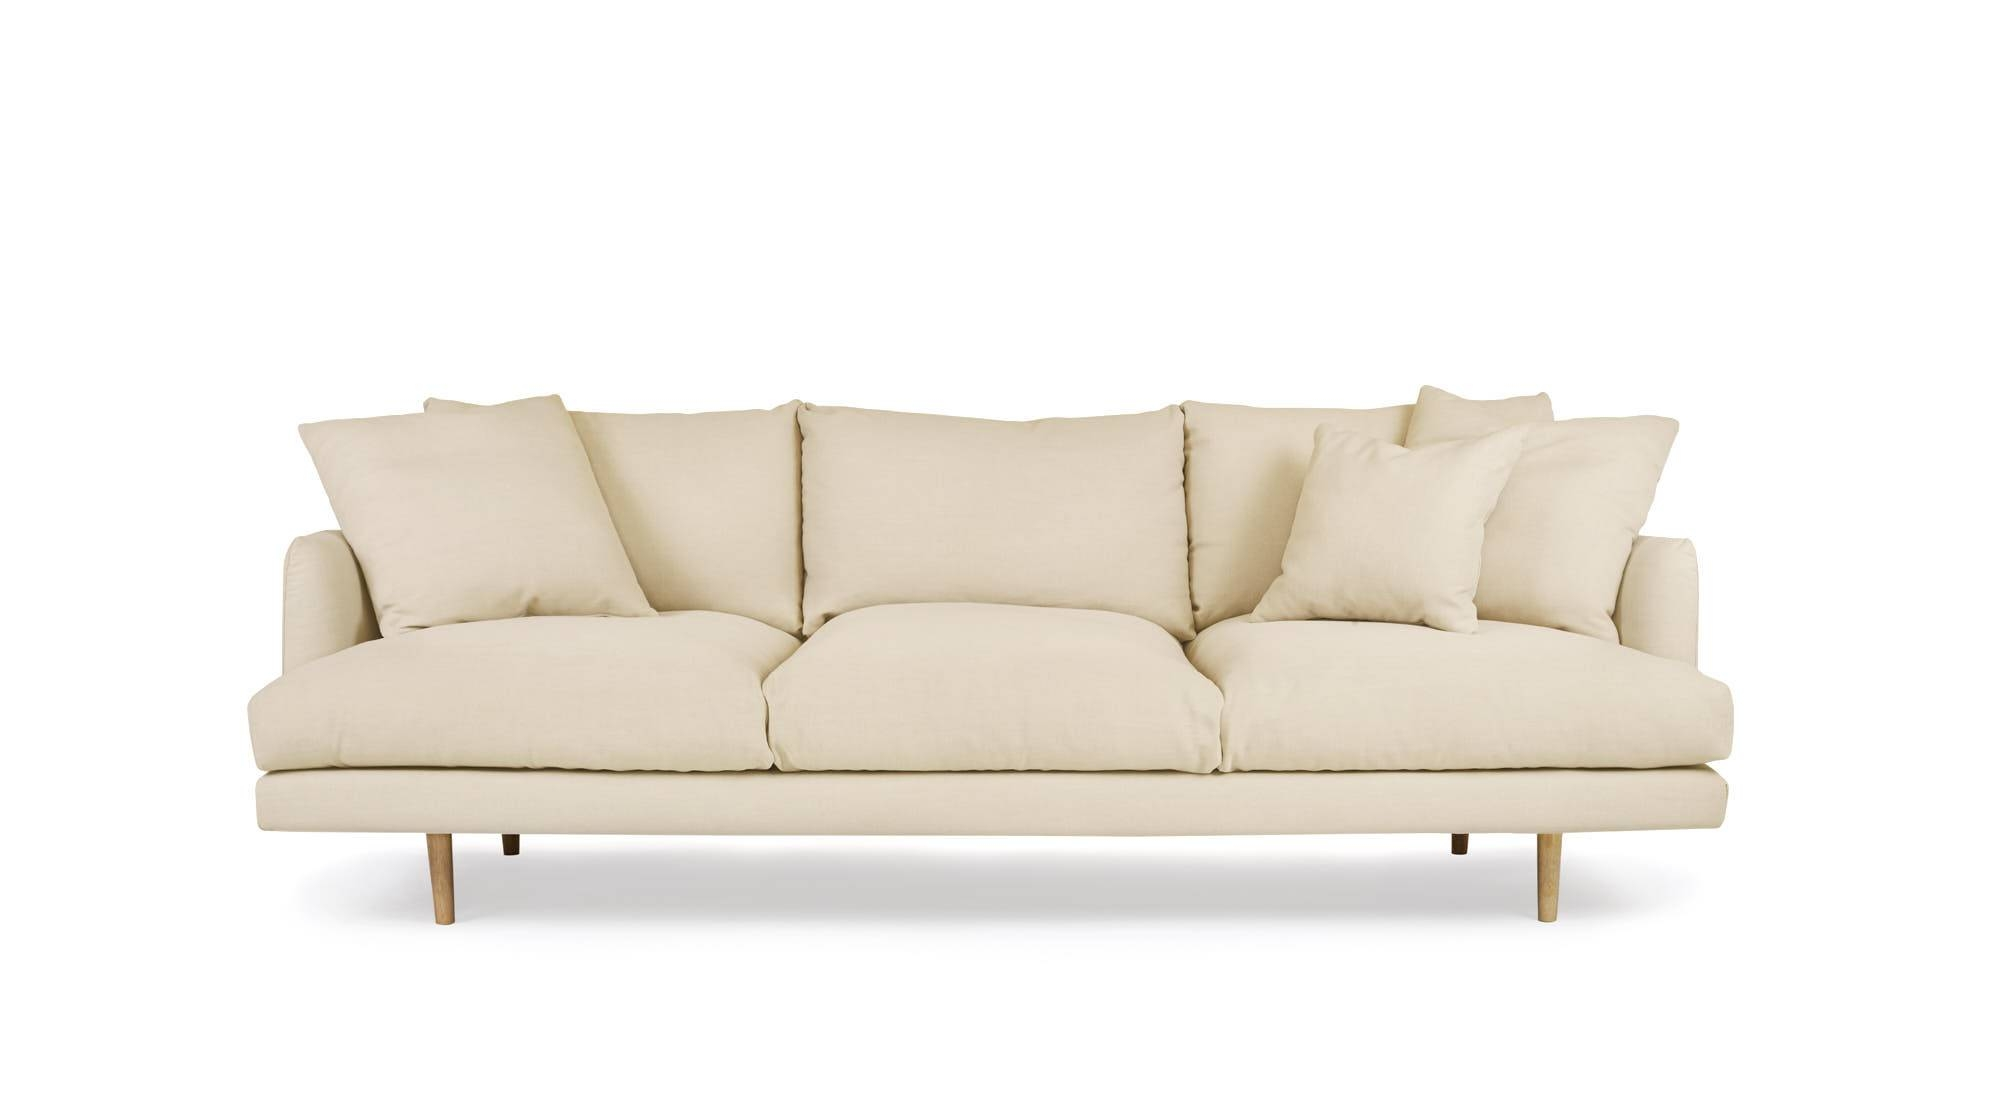 Hampton - 4 Seat Sofa | Loungelovers with regard to 4 Seat Couch (Image 17 of 30)